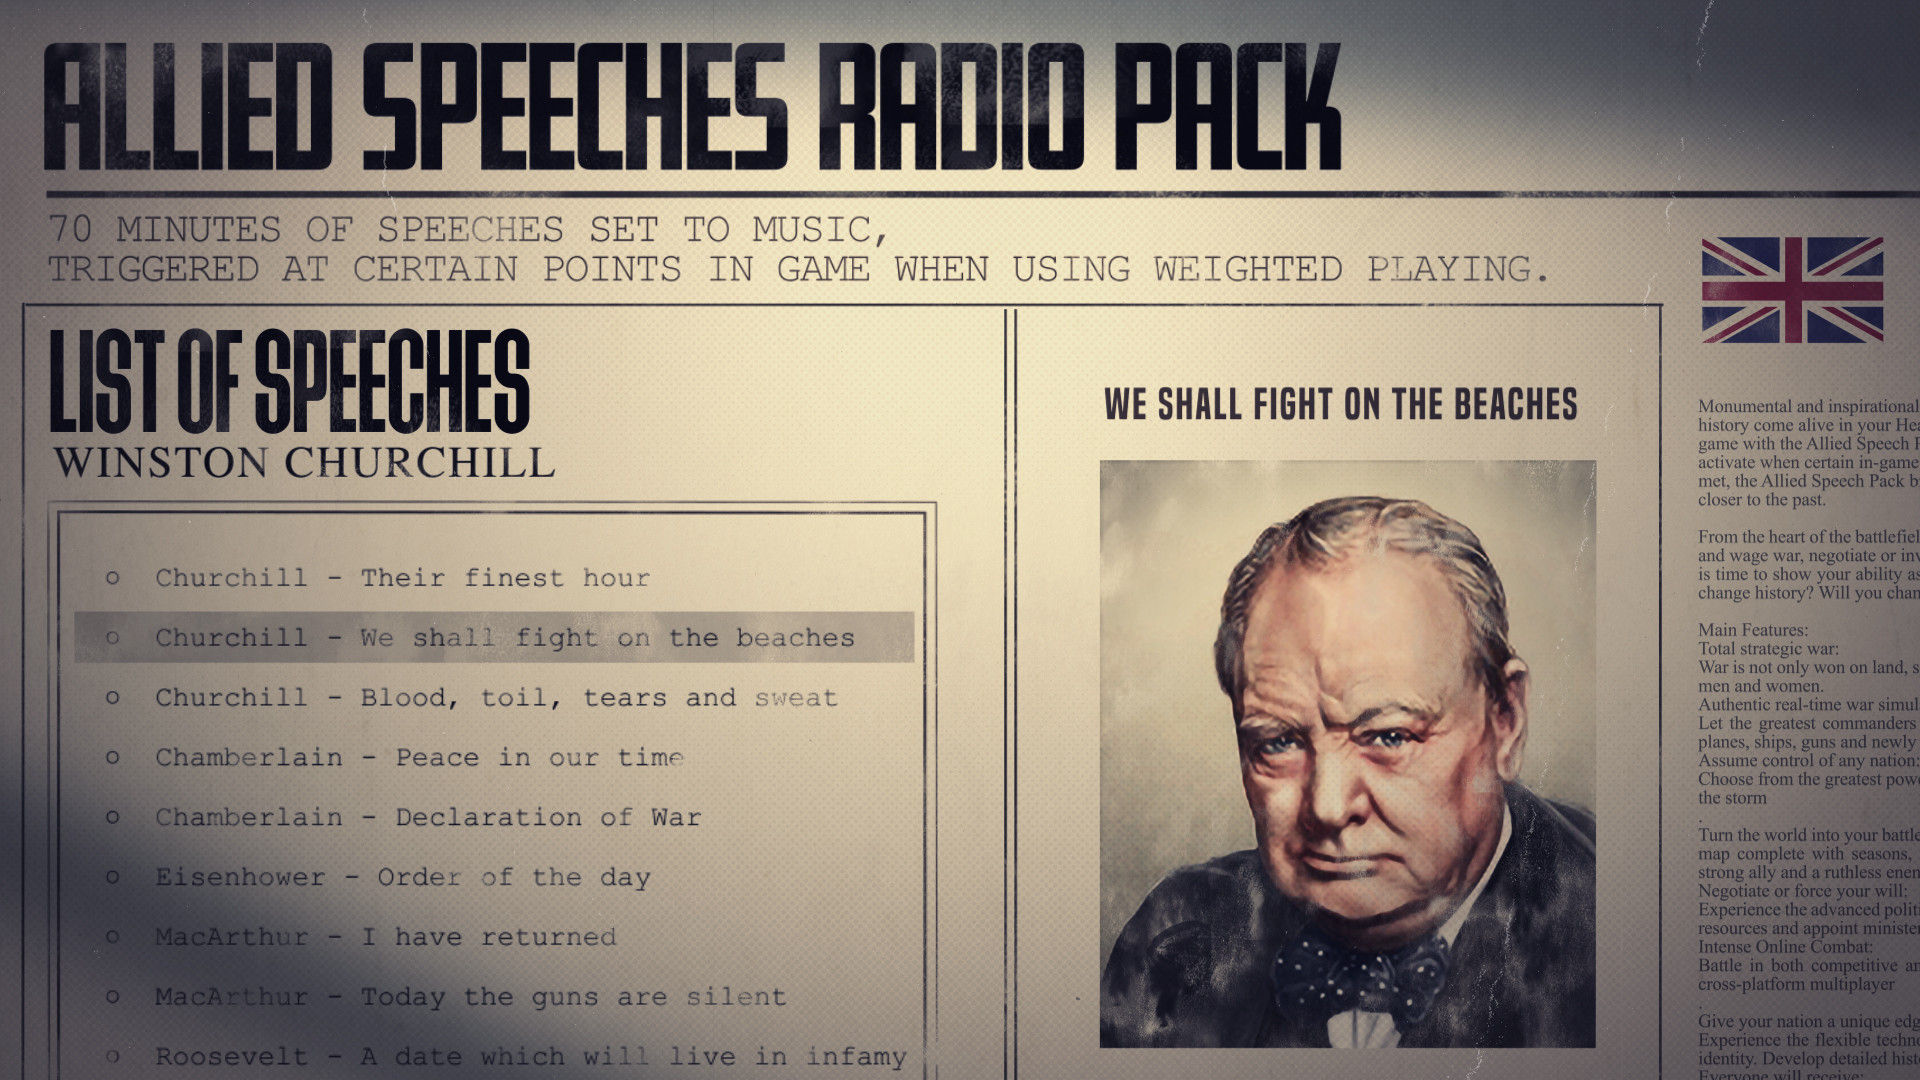 Hearts of Iron IV: Allied Speeches Music Pack